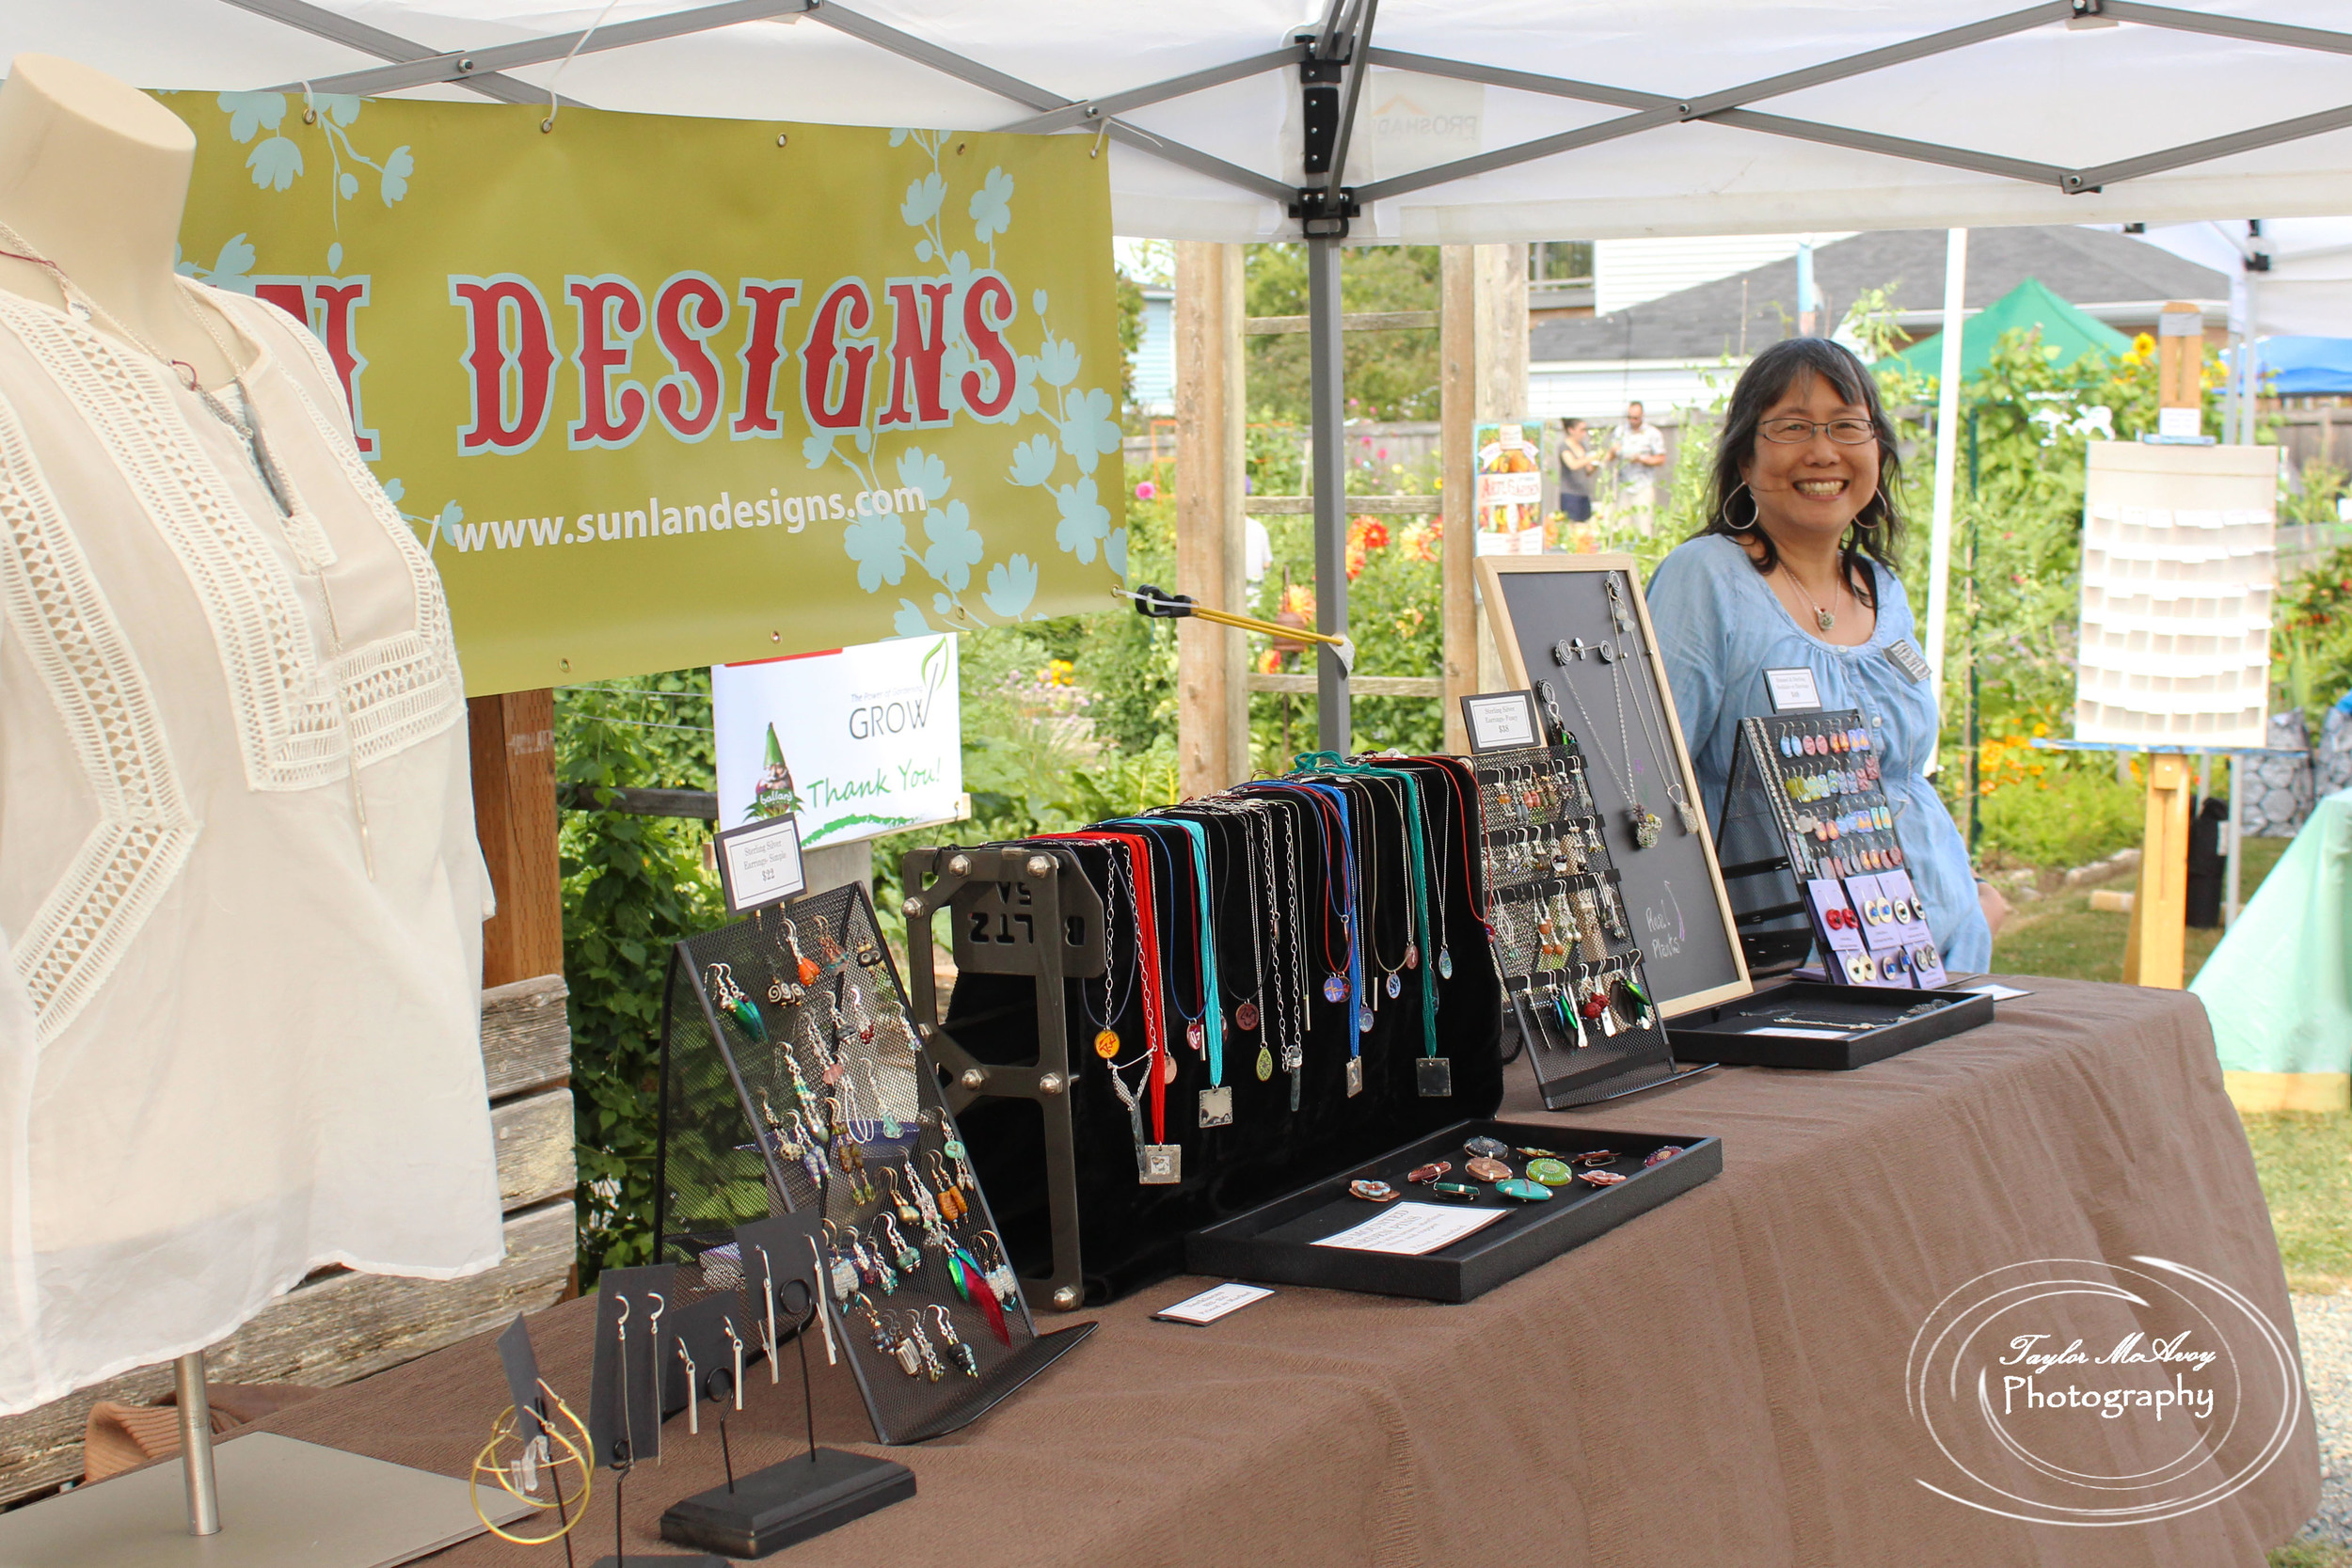 Nancy Hom of Sunlan Designs has been creating hand-made and nature or garden themed jewelry for Art in the Garden since 2010 and is her only show in the summer.